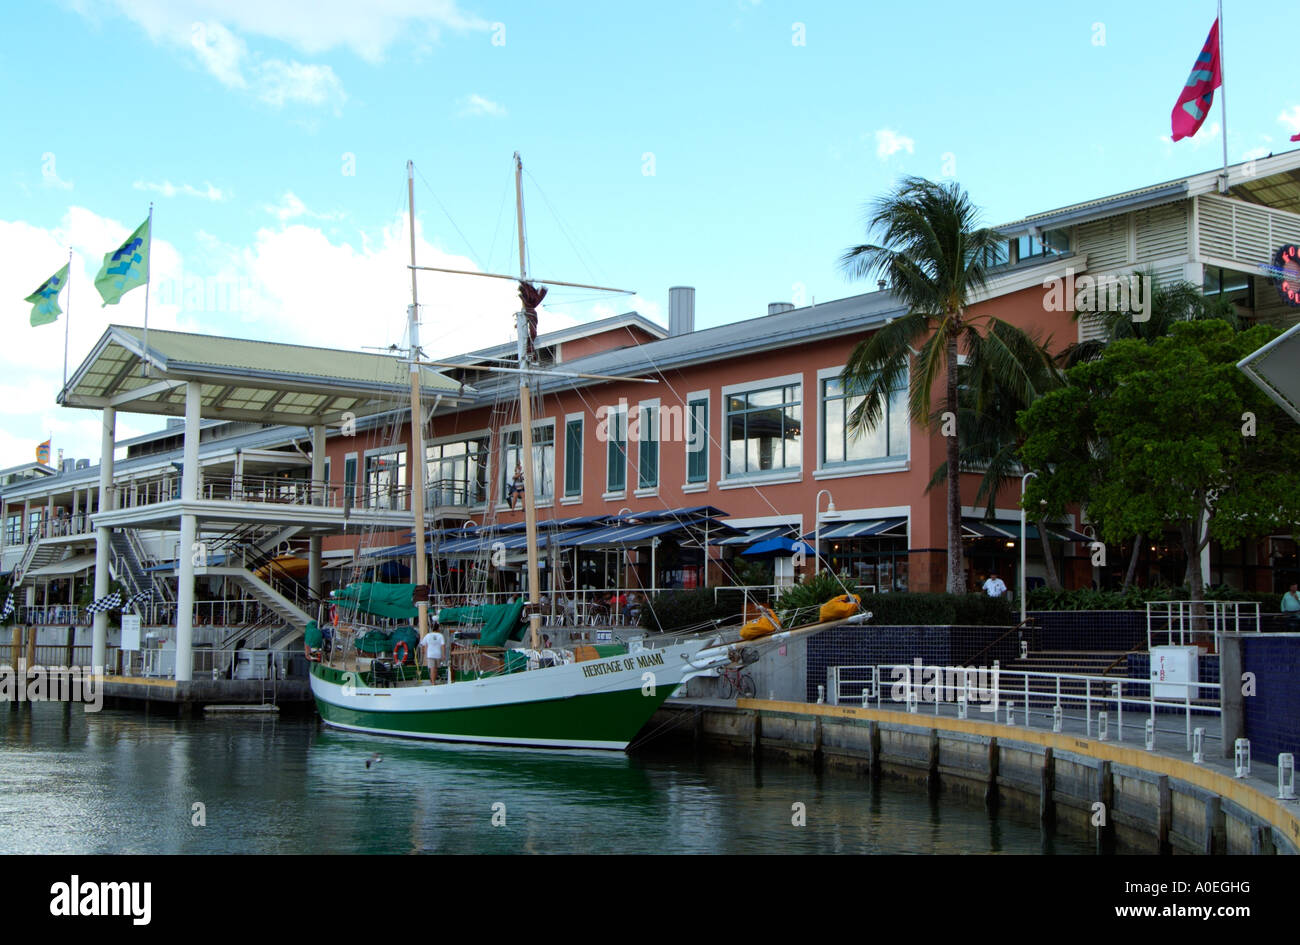 Bayside Marketplace, located in downtown Miami, is a wonderful place to come and spend time with your loved ones, hangout with friends, walk the perimeters of the area, shop, dine and relax by the harbor/5().